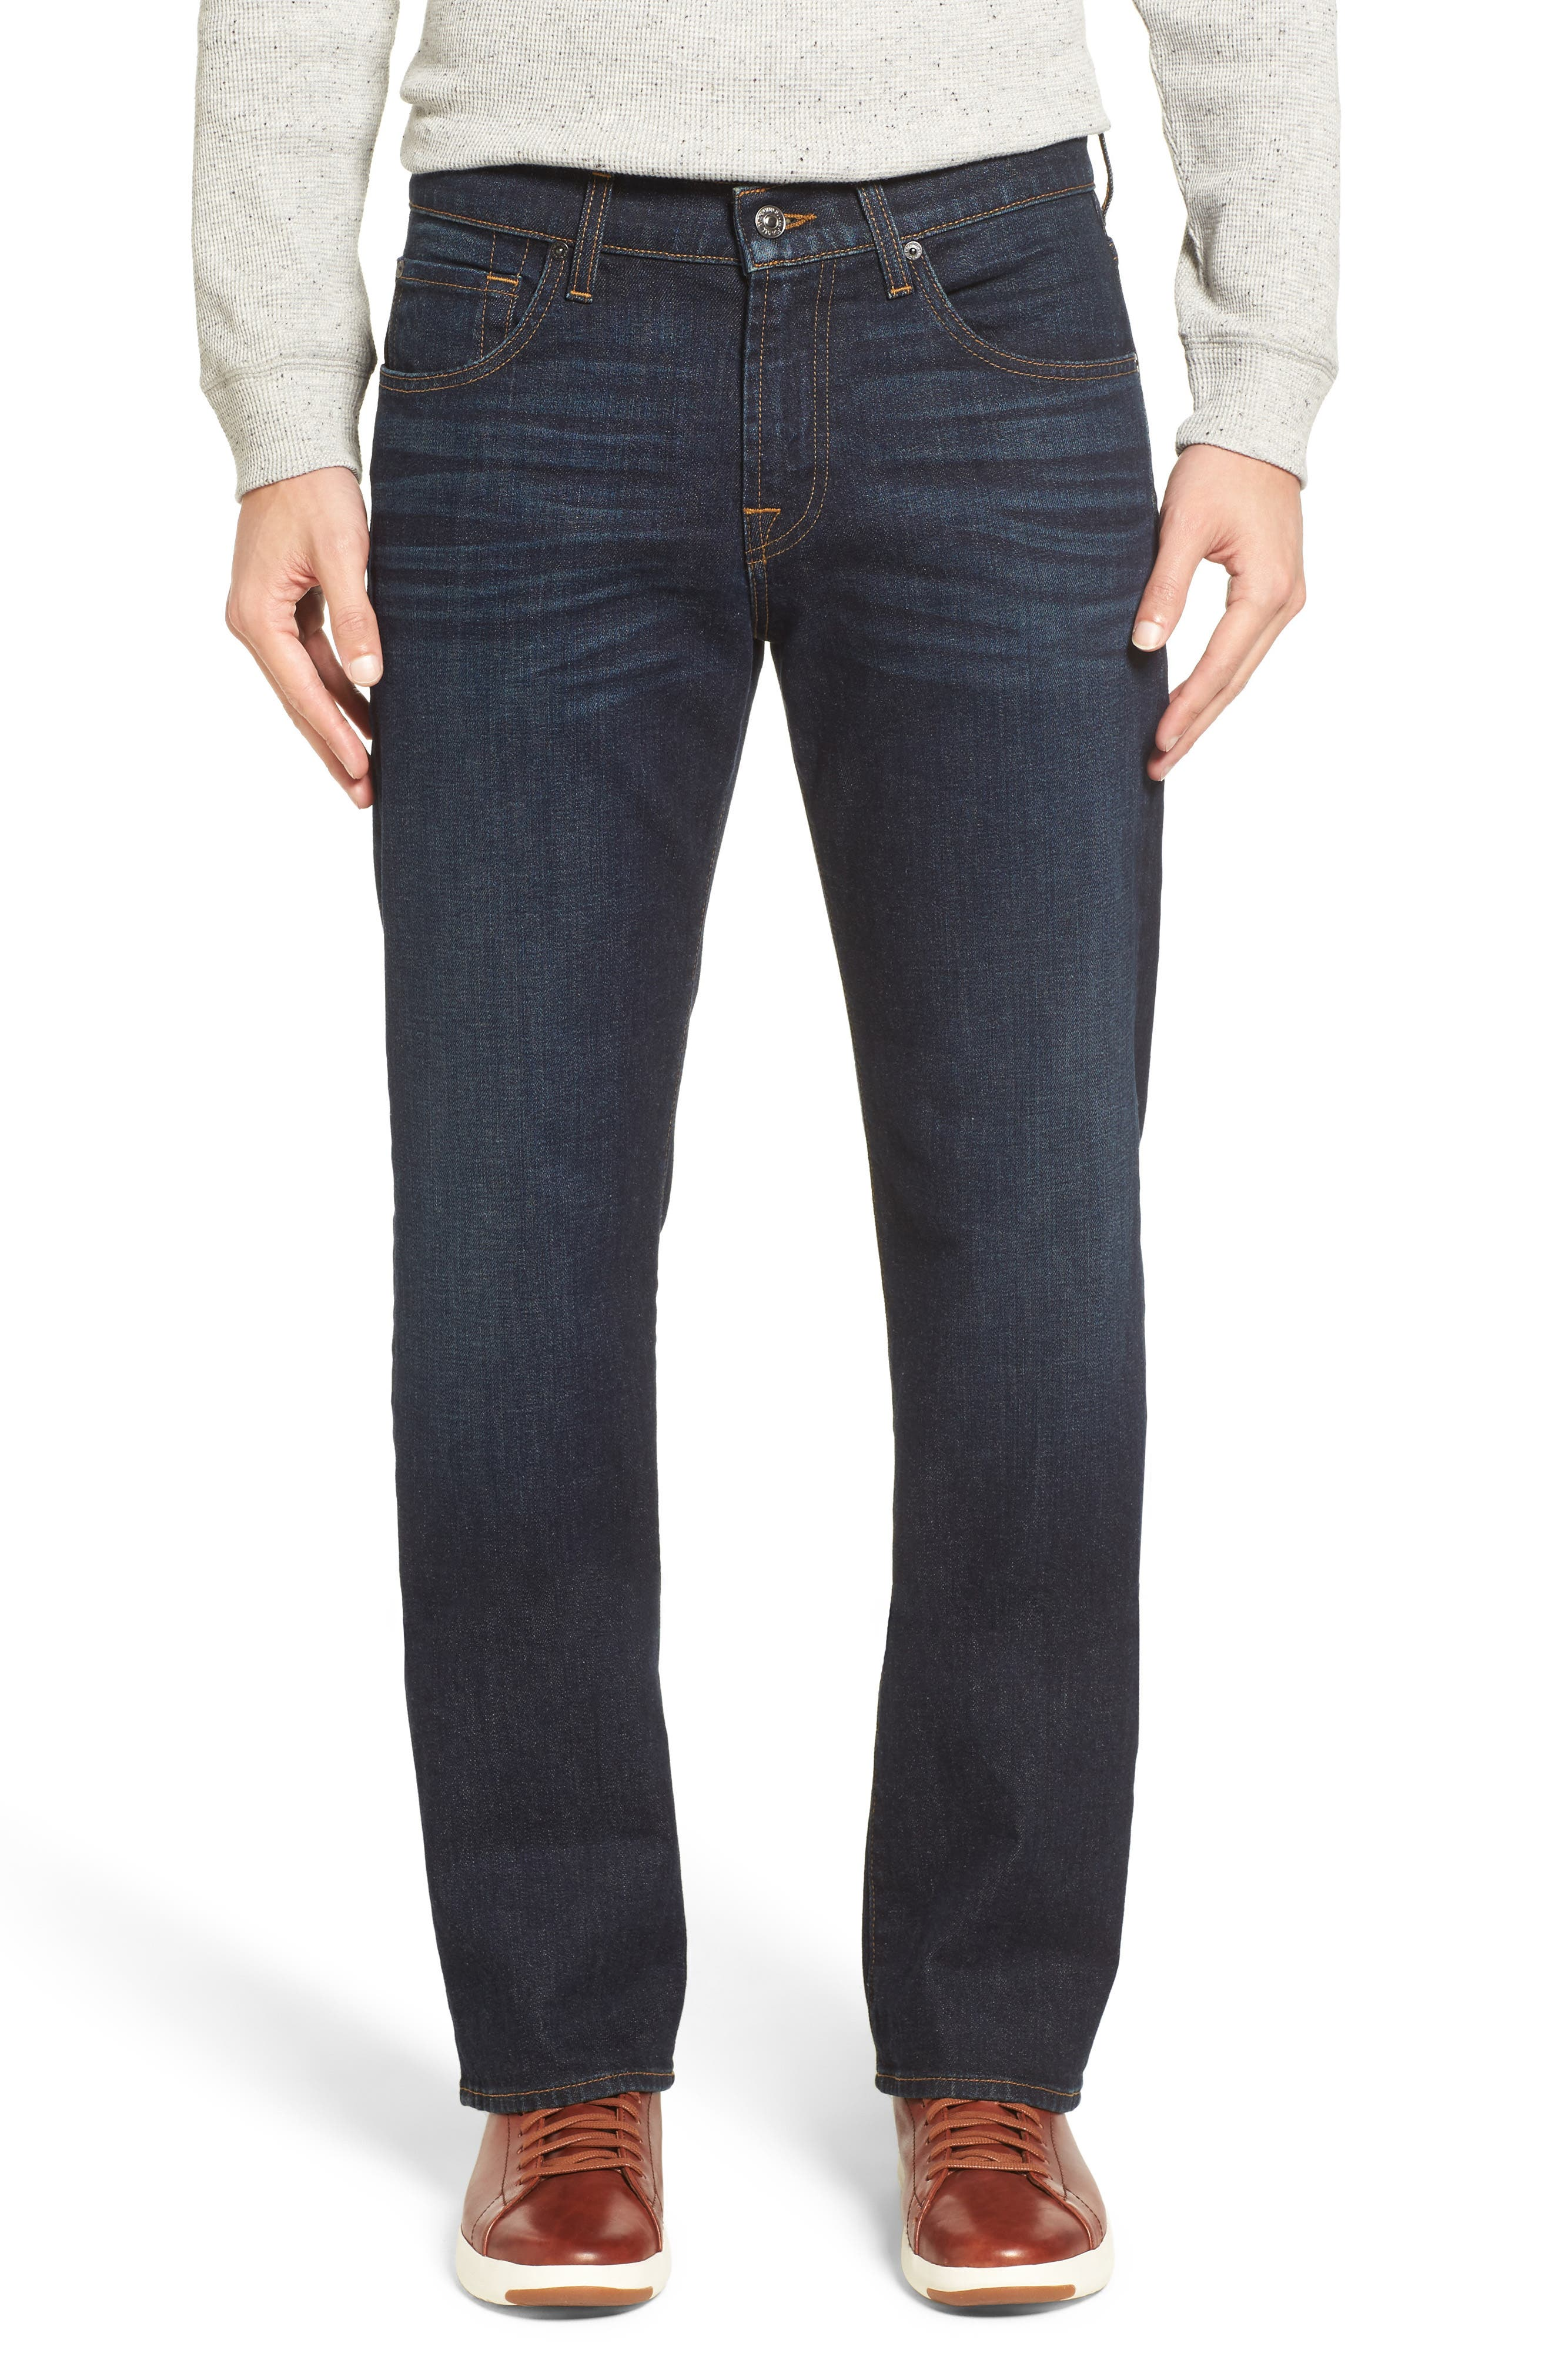 Austyn Relaxed Fit Jeans,                             Main thumbnail 1, color,                             402